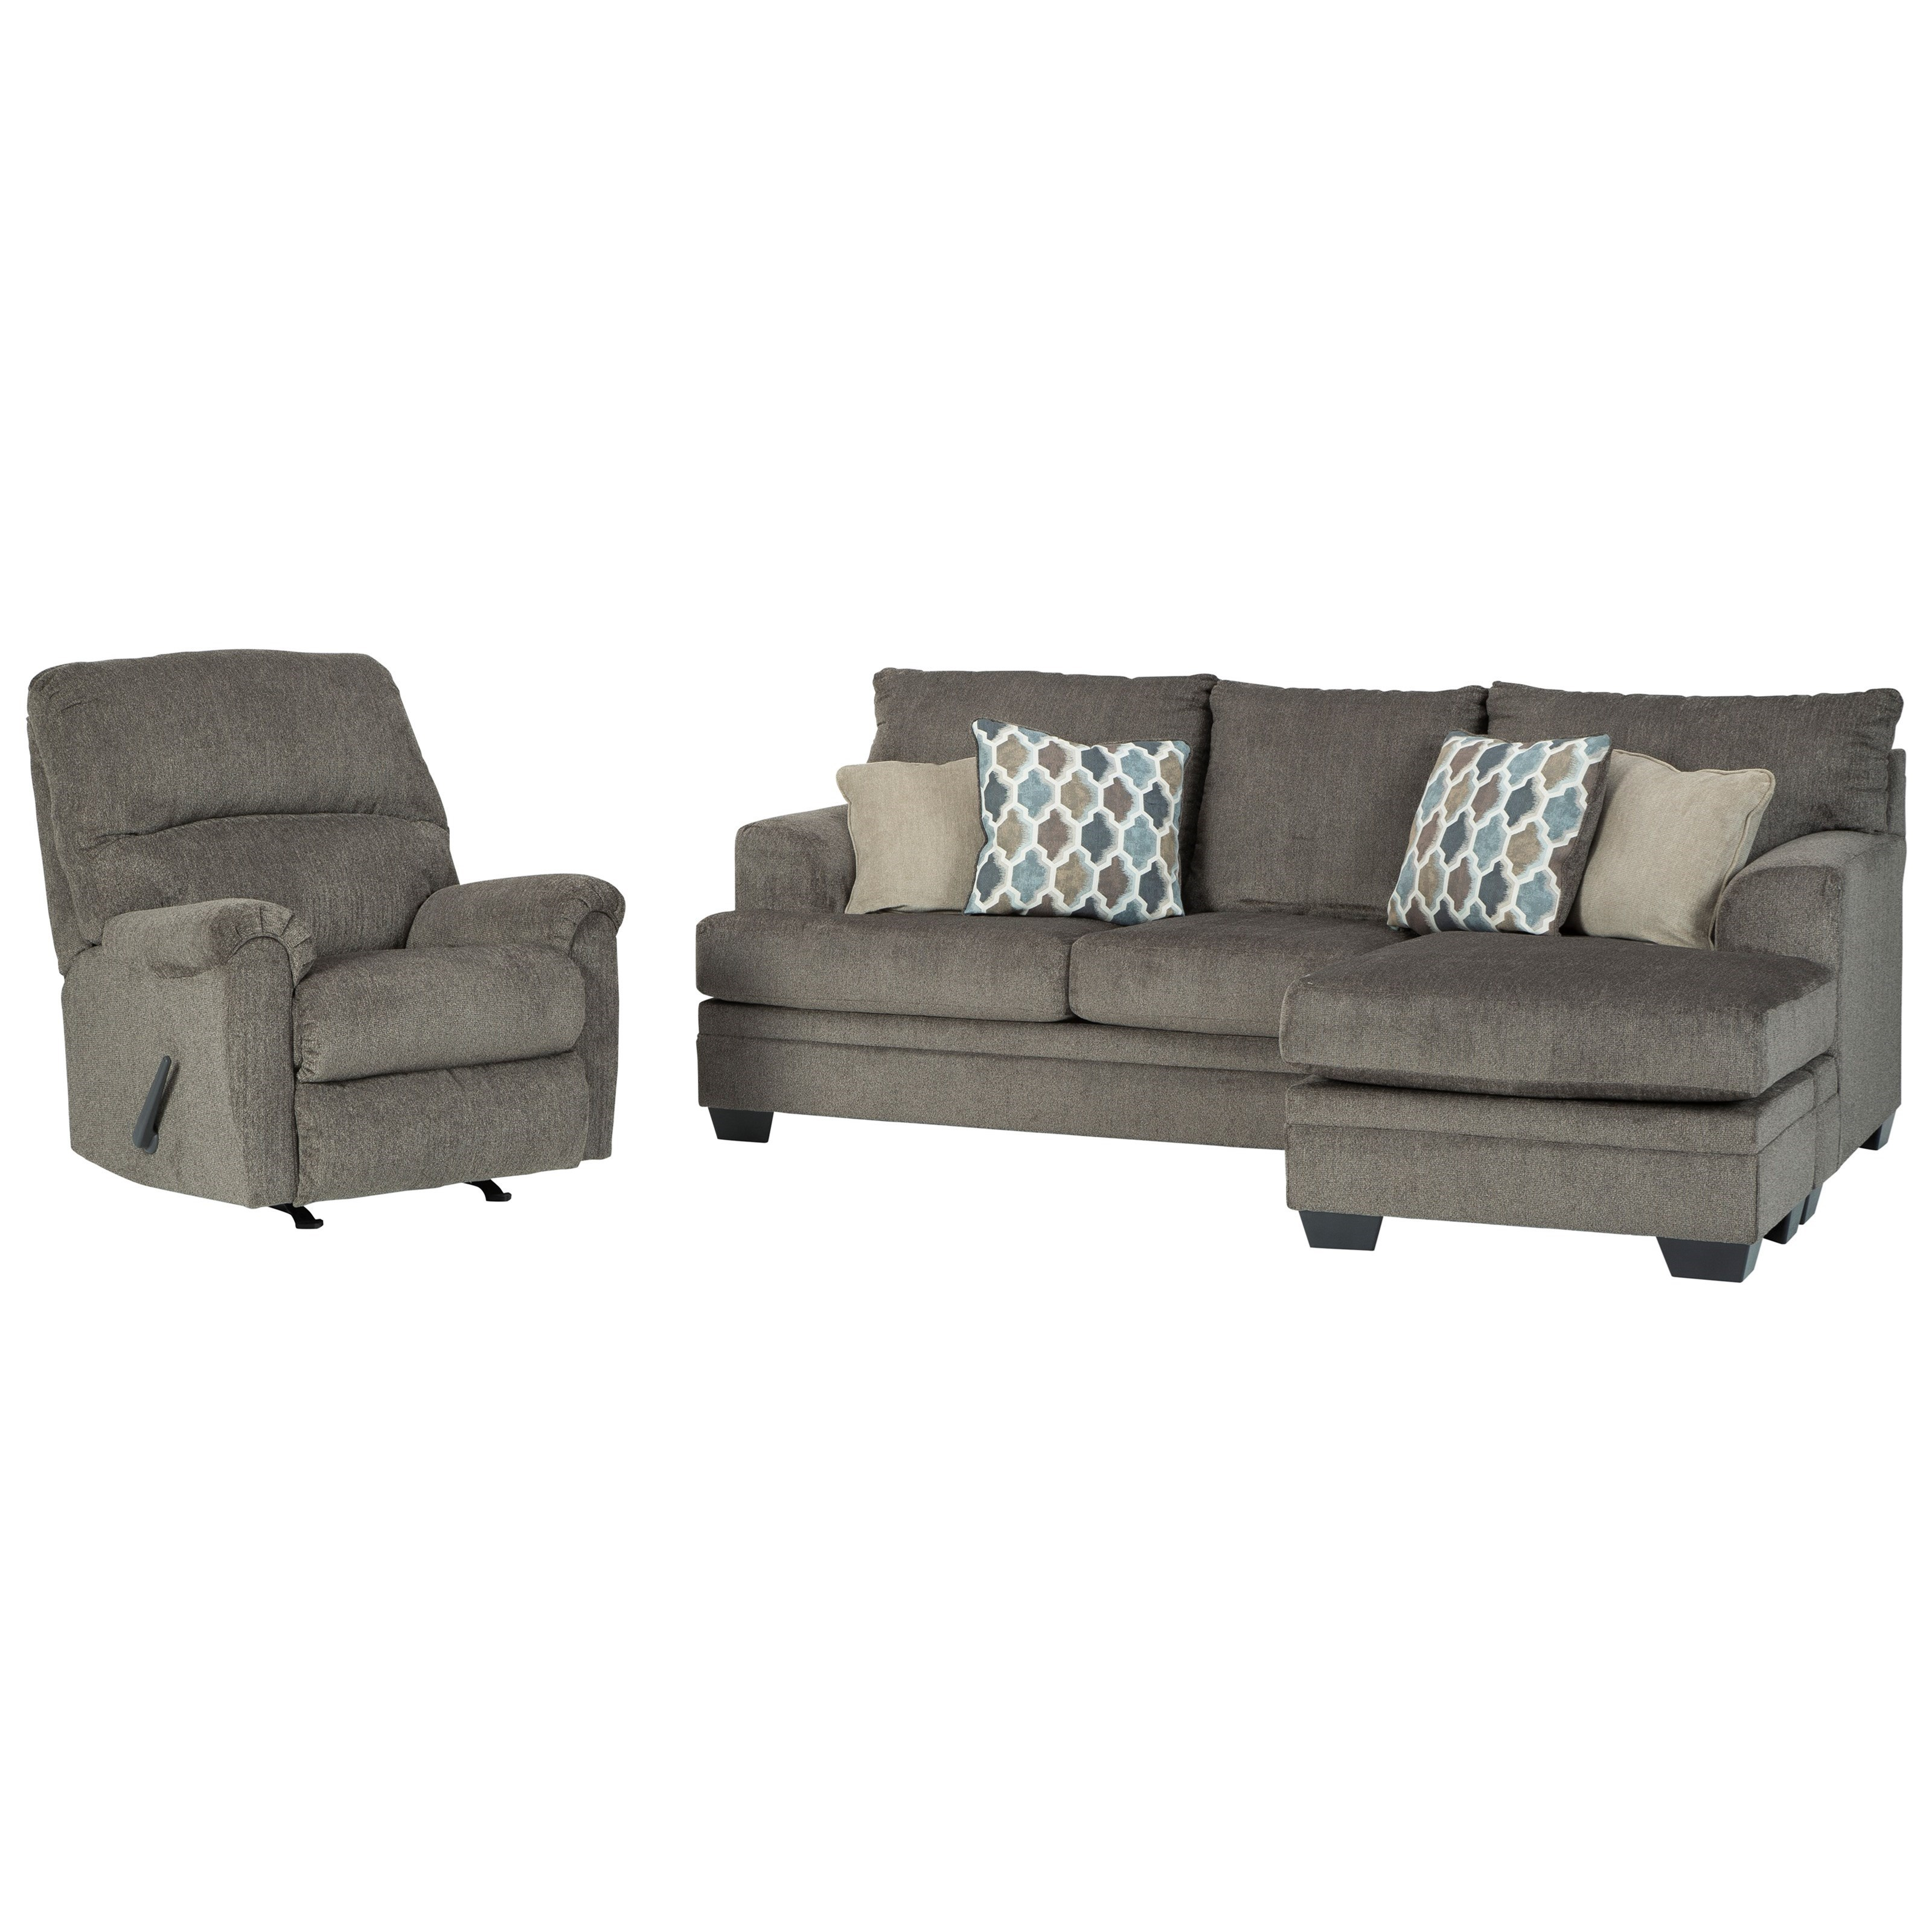 Dorsten Stationary Living Room Group by Signature Design by Ashley at Zak's Warehouse Clearance Center